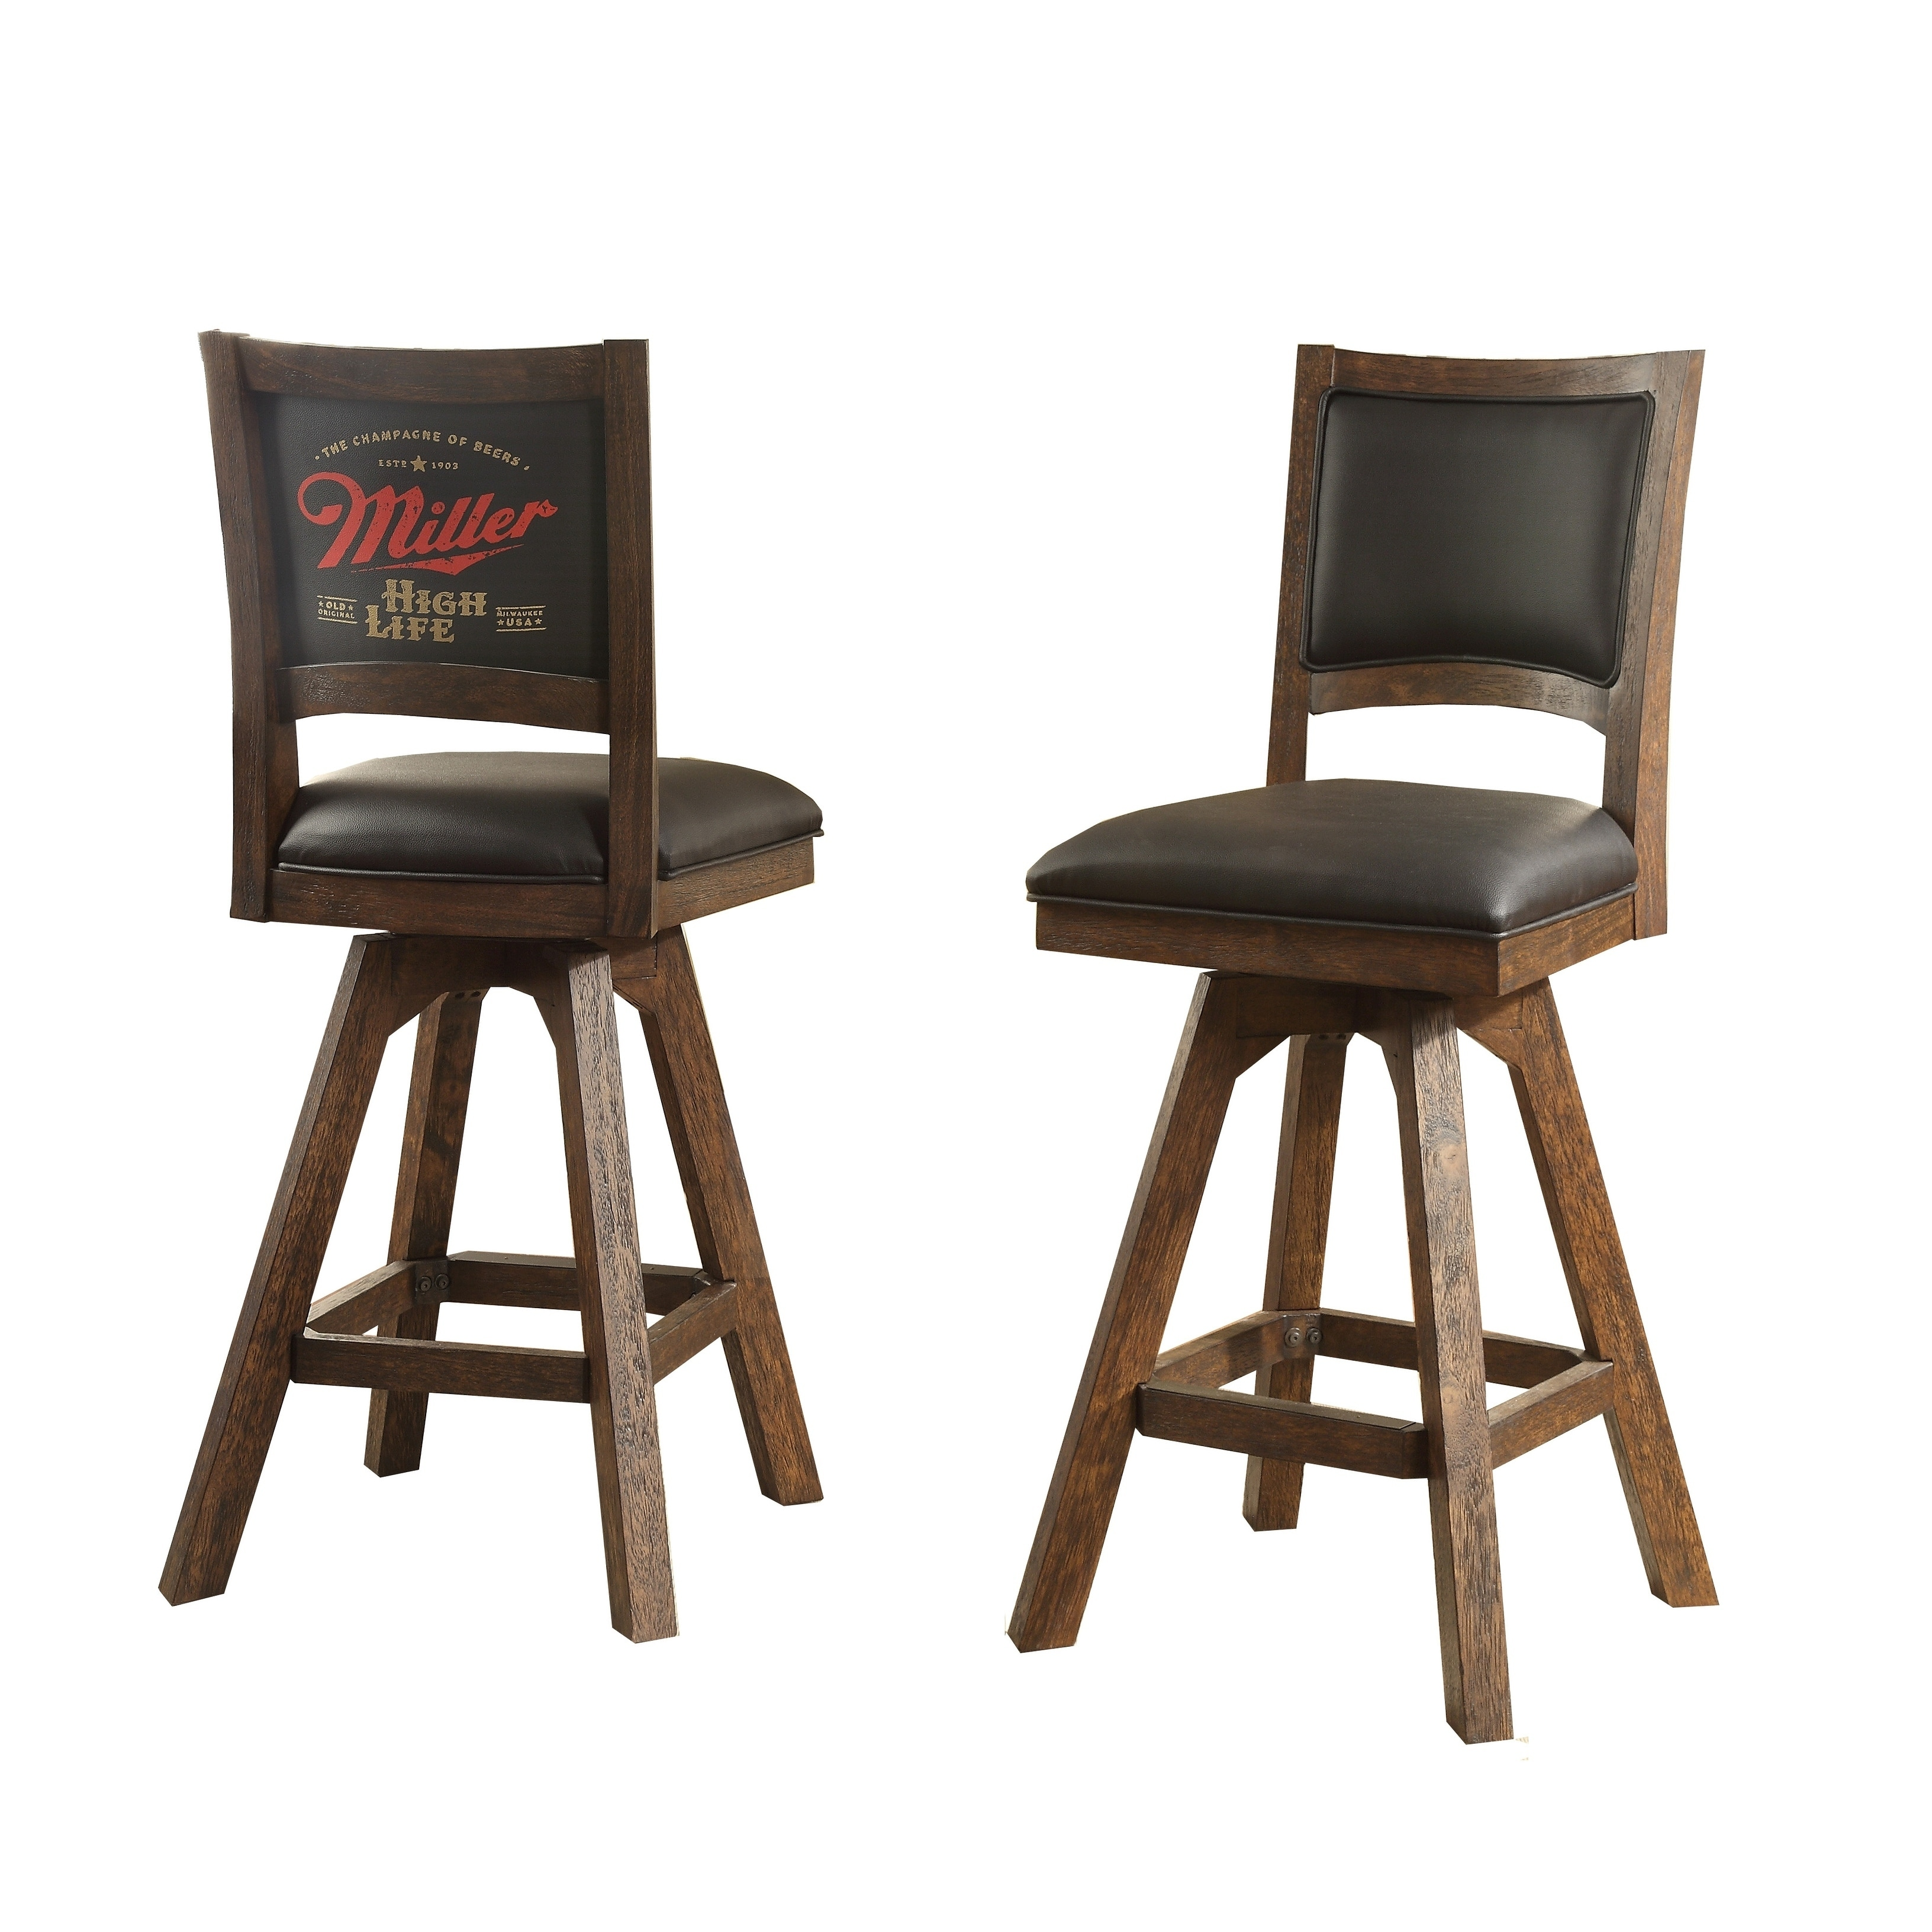 Miller High Life Barstool with Armless (Standard Logo) - N/A - Free ...